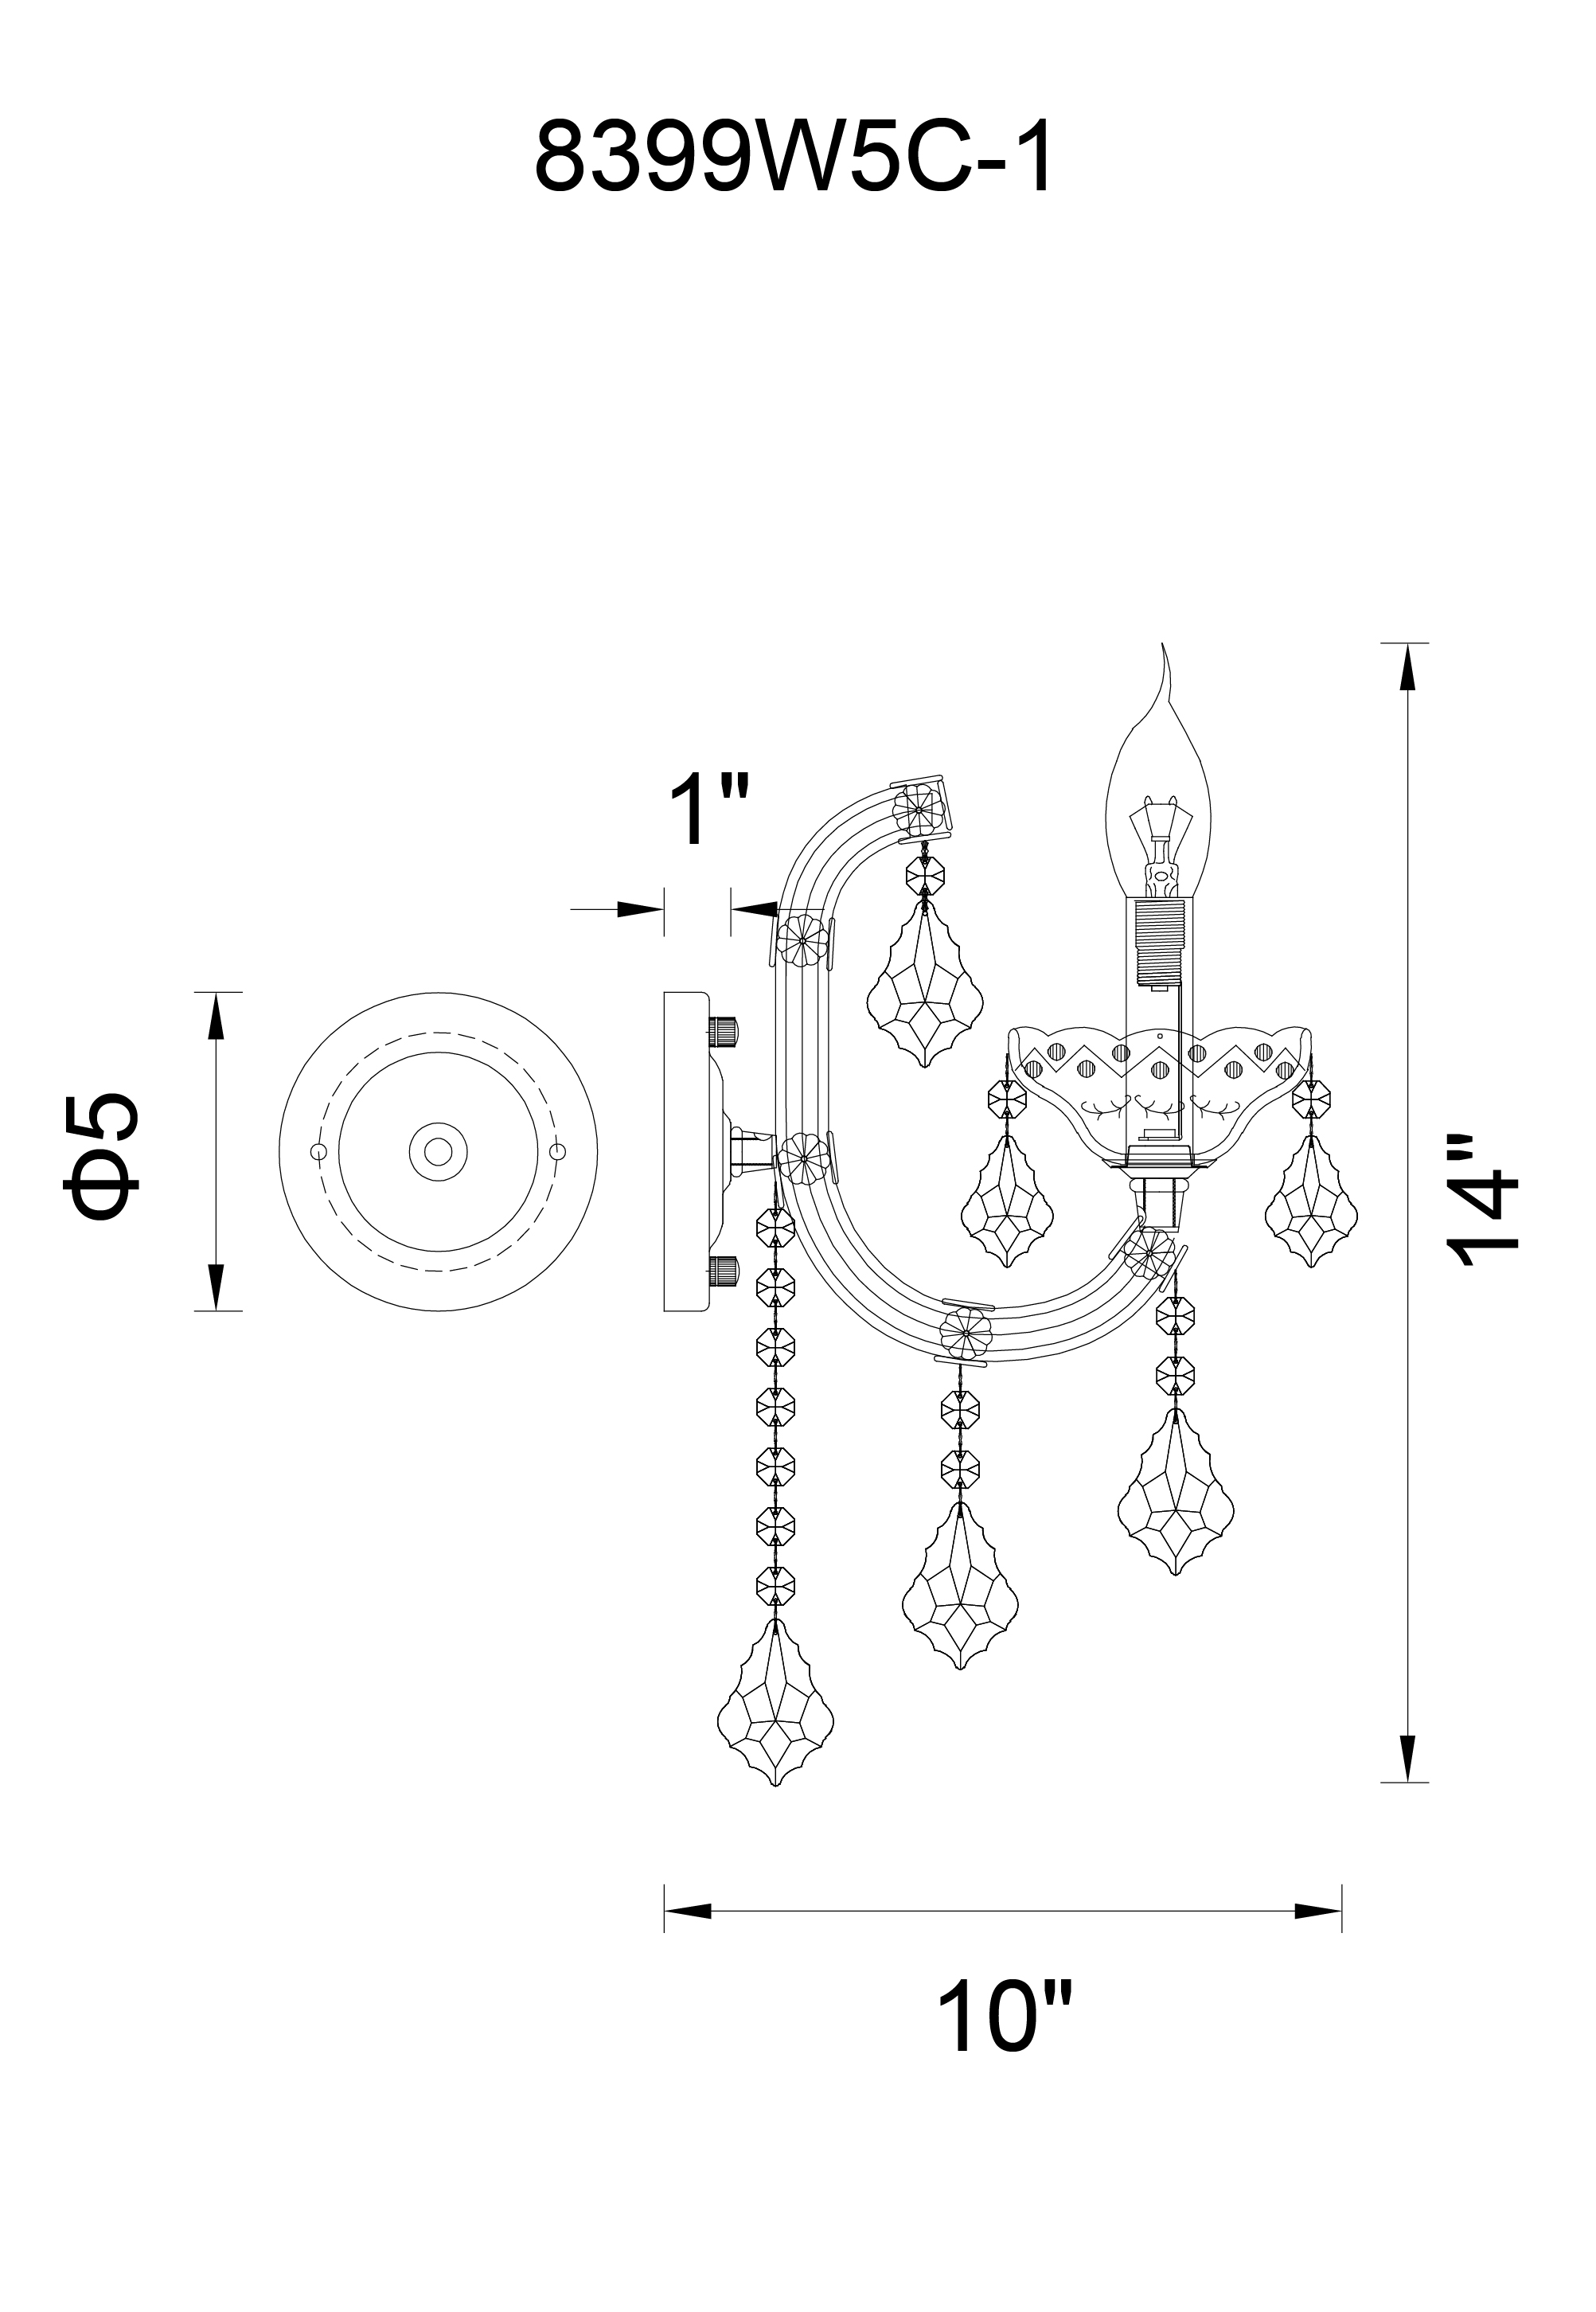 CWI Lighting Riley 1 Light Wall Sconce With Chrome Finish Model: 8399W5C-1 (CLEAR) Line Drawing